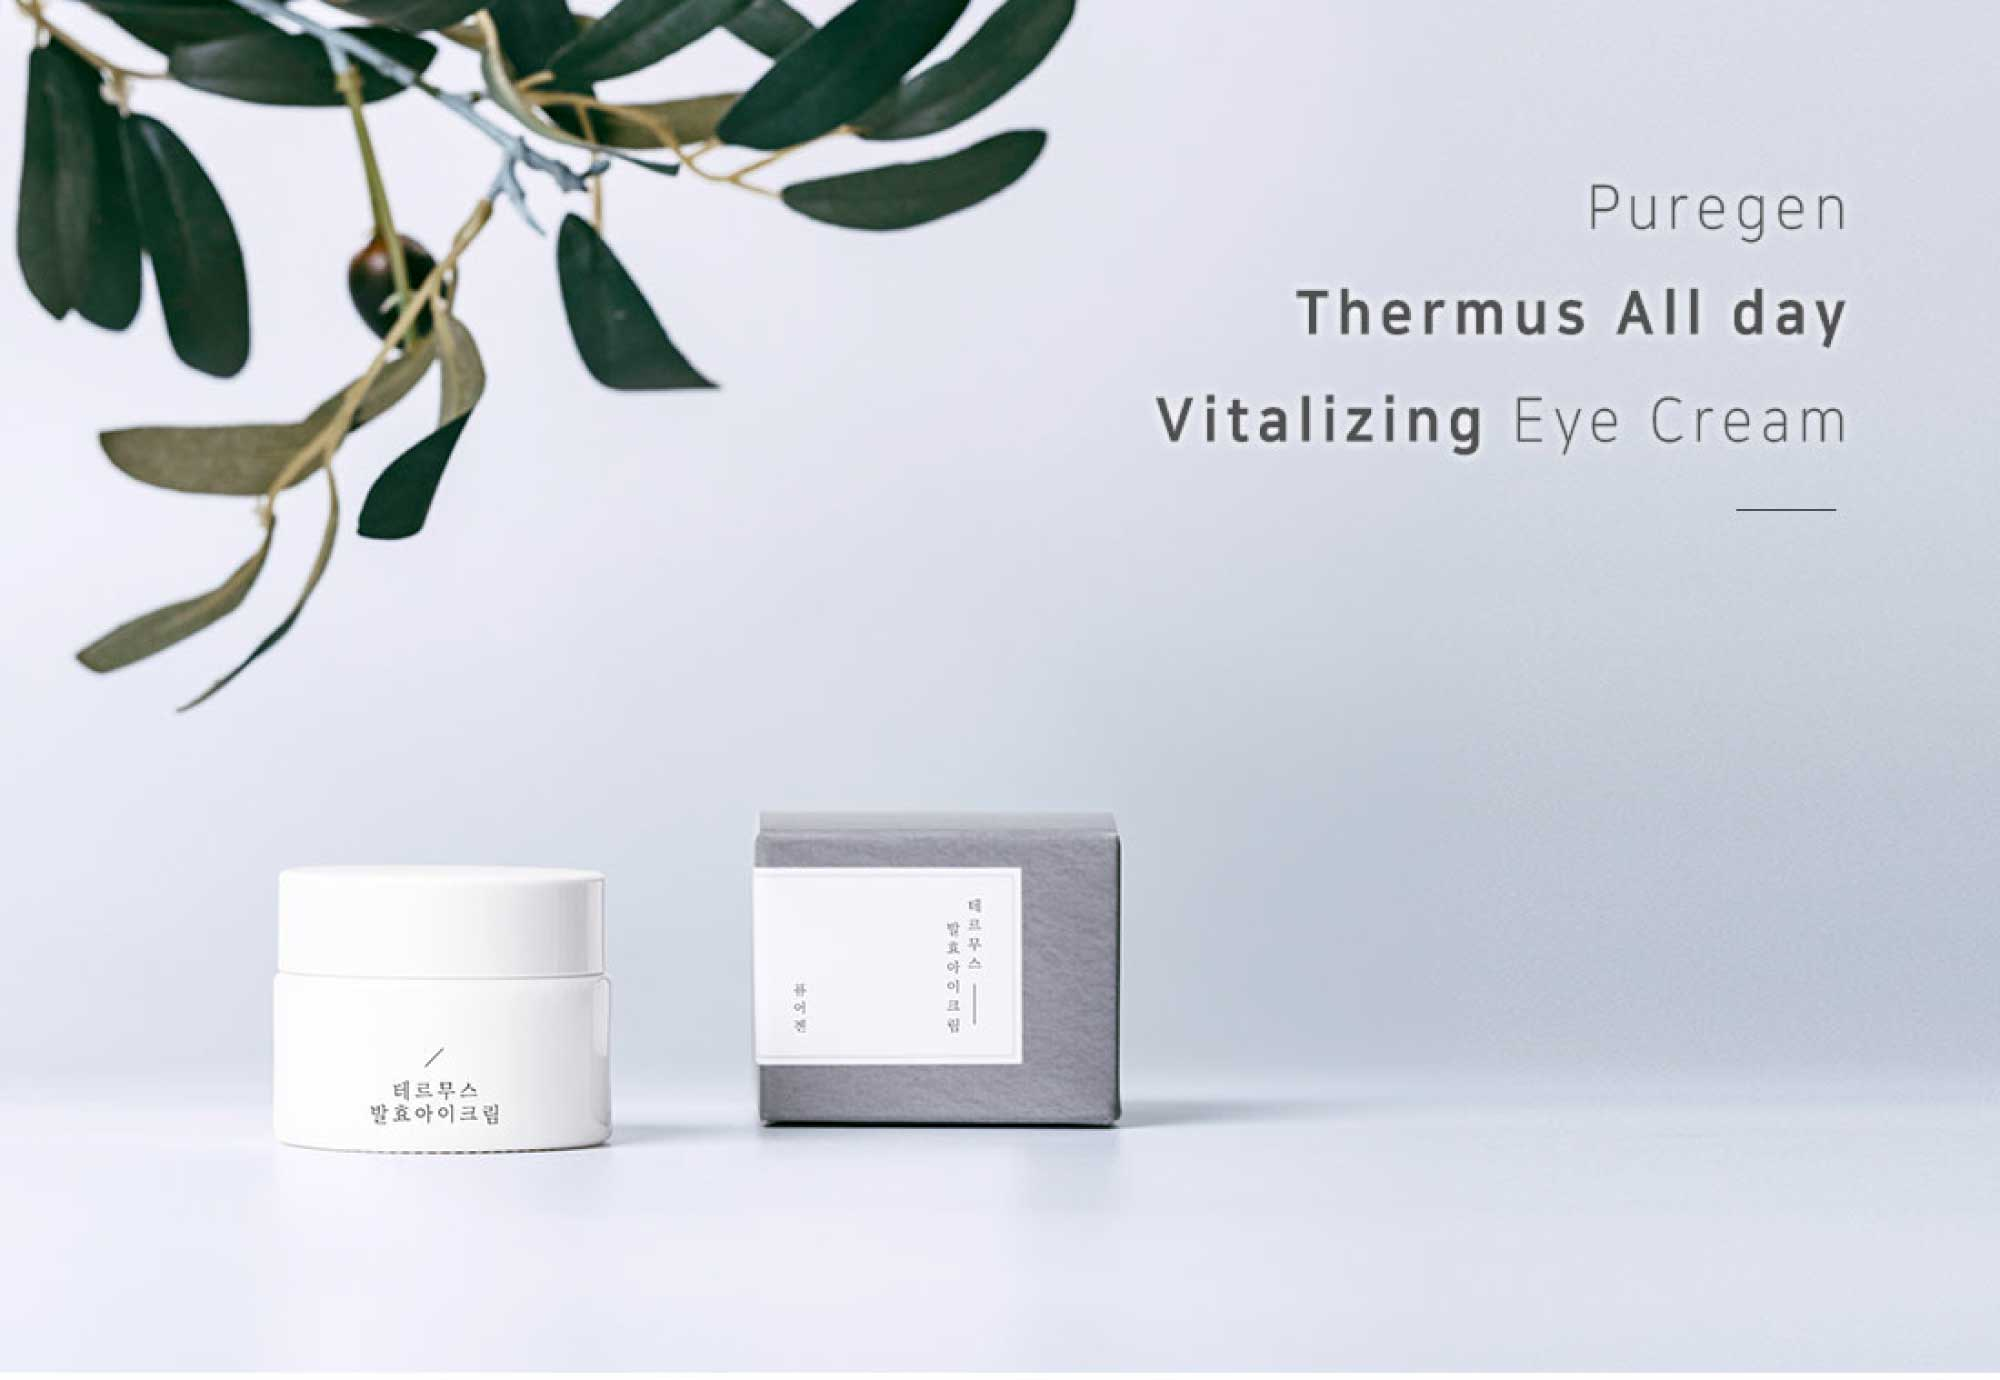 Thermus All day Vitalizing Eye Cream 20g